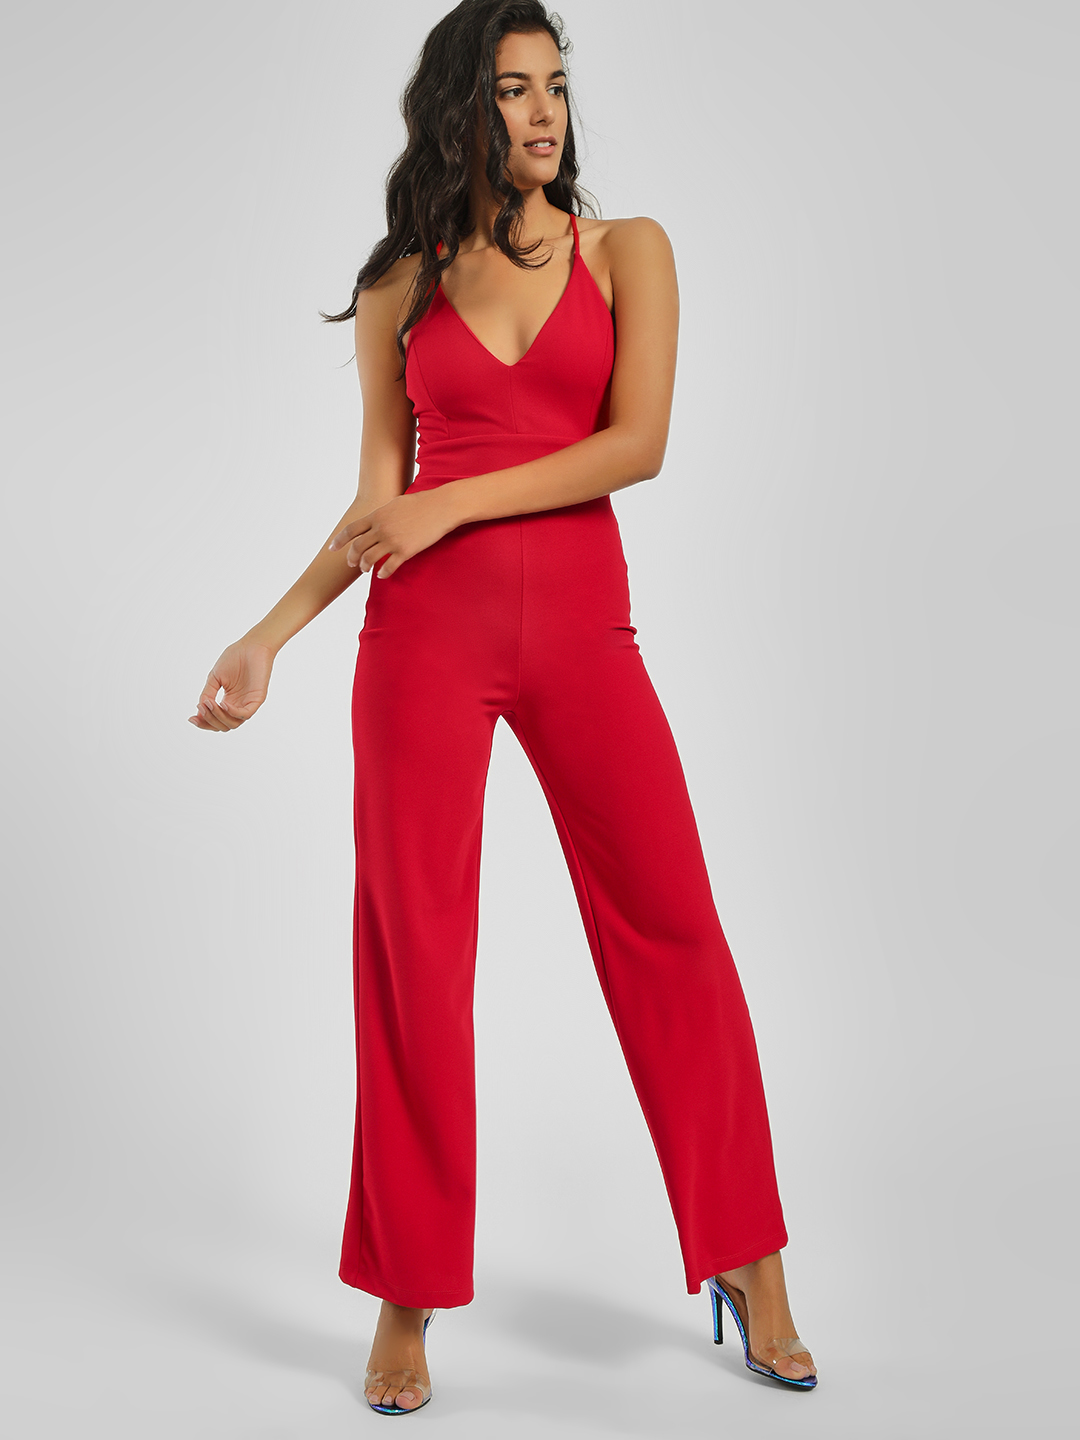 Iris Red Scalloped Lace Back Strappy Jumpsuit 1